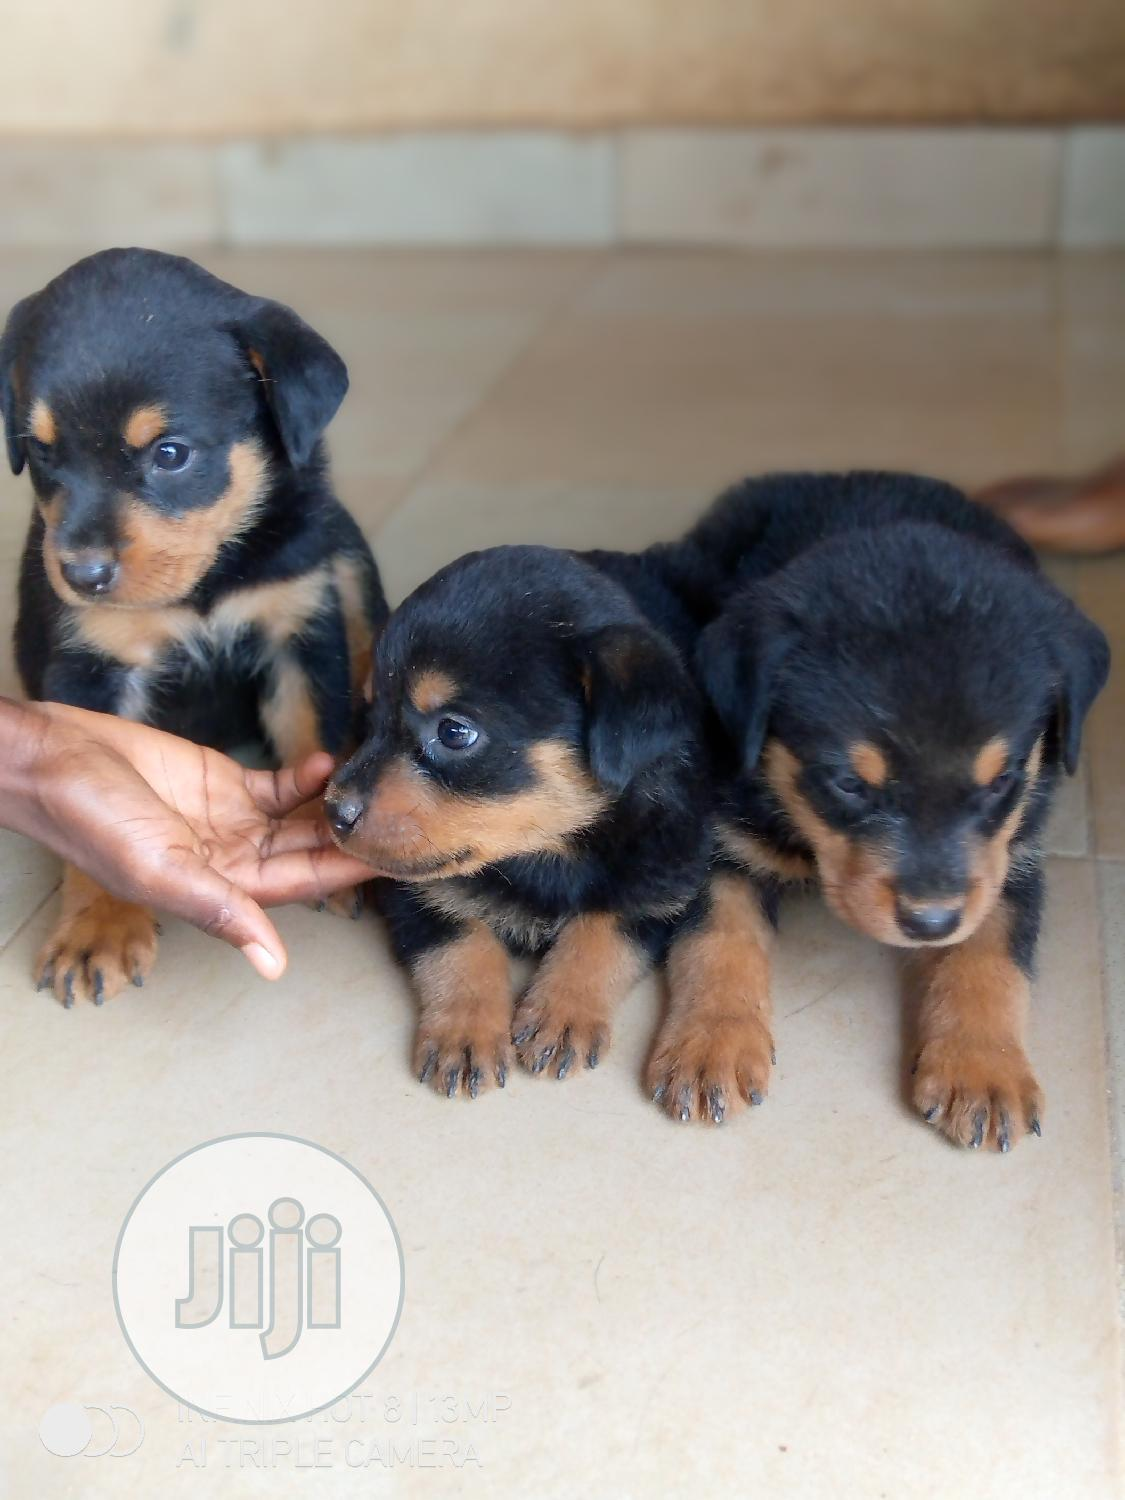 1-3 month Male Purebred Rottweiler | Dogs & Puppies for sale in Ilorin South, Kwara State, Nigeria